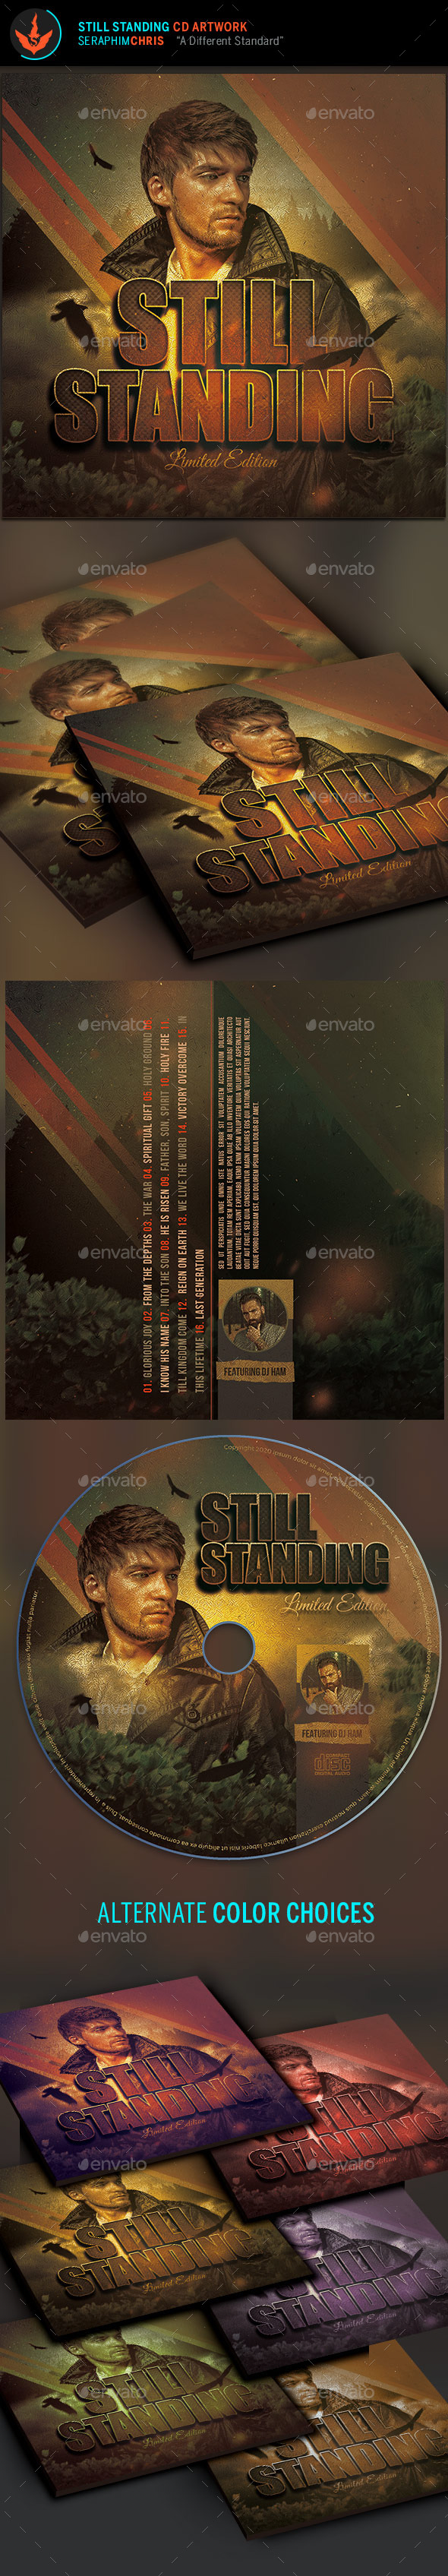 Still Standing: CD Artwork Template - CD & DVD Artwork Print Templates